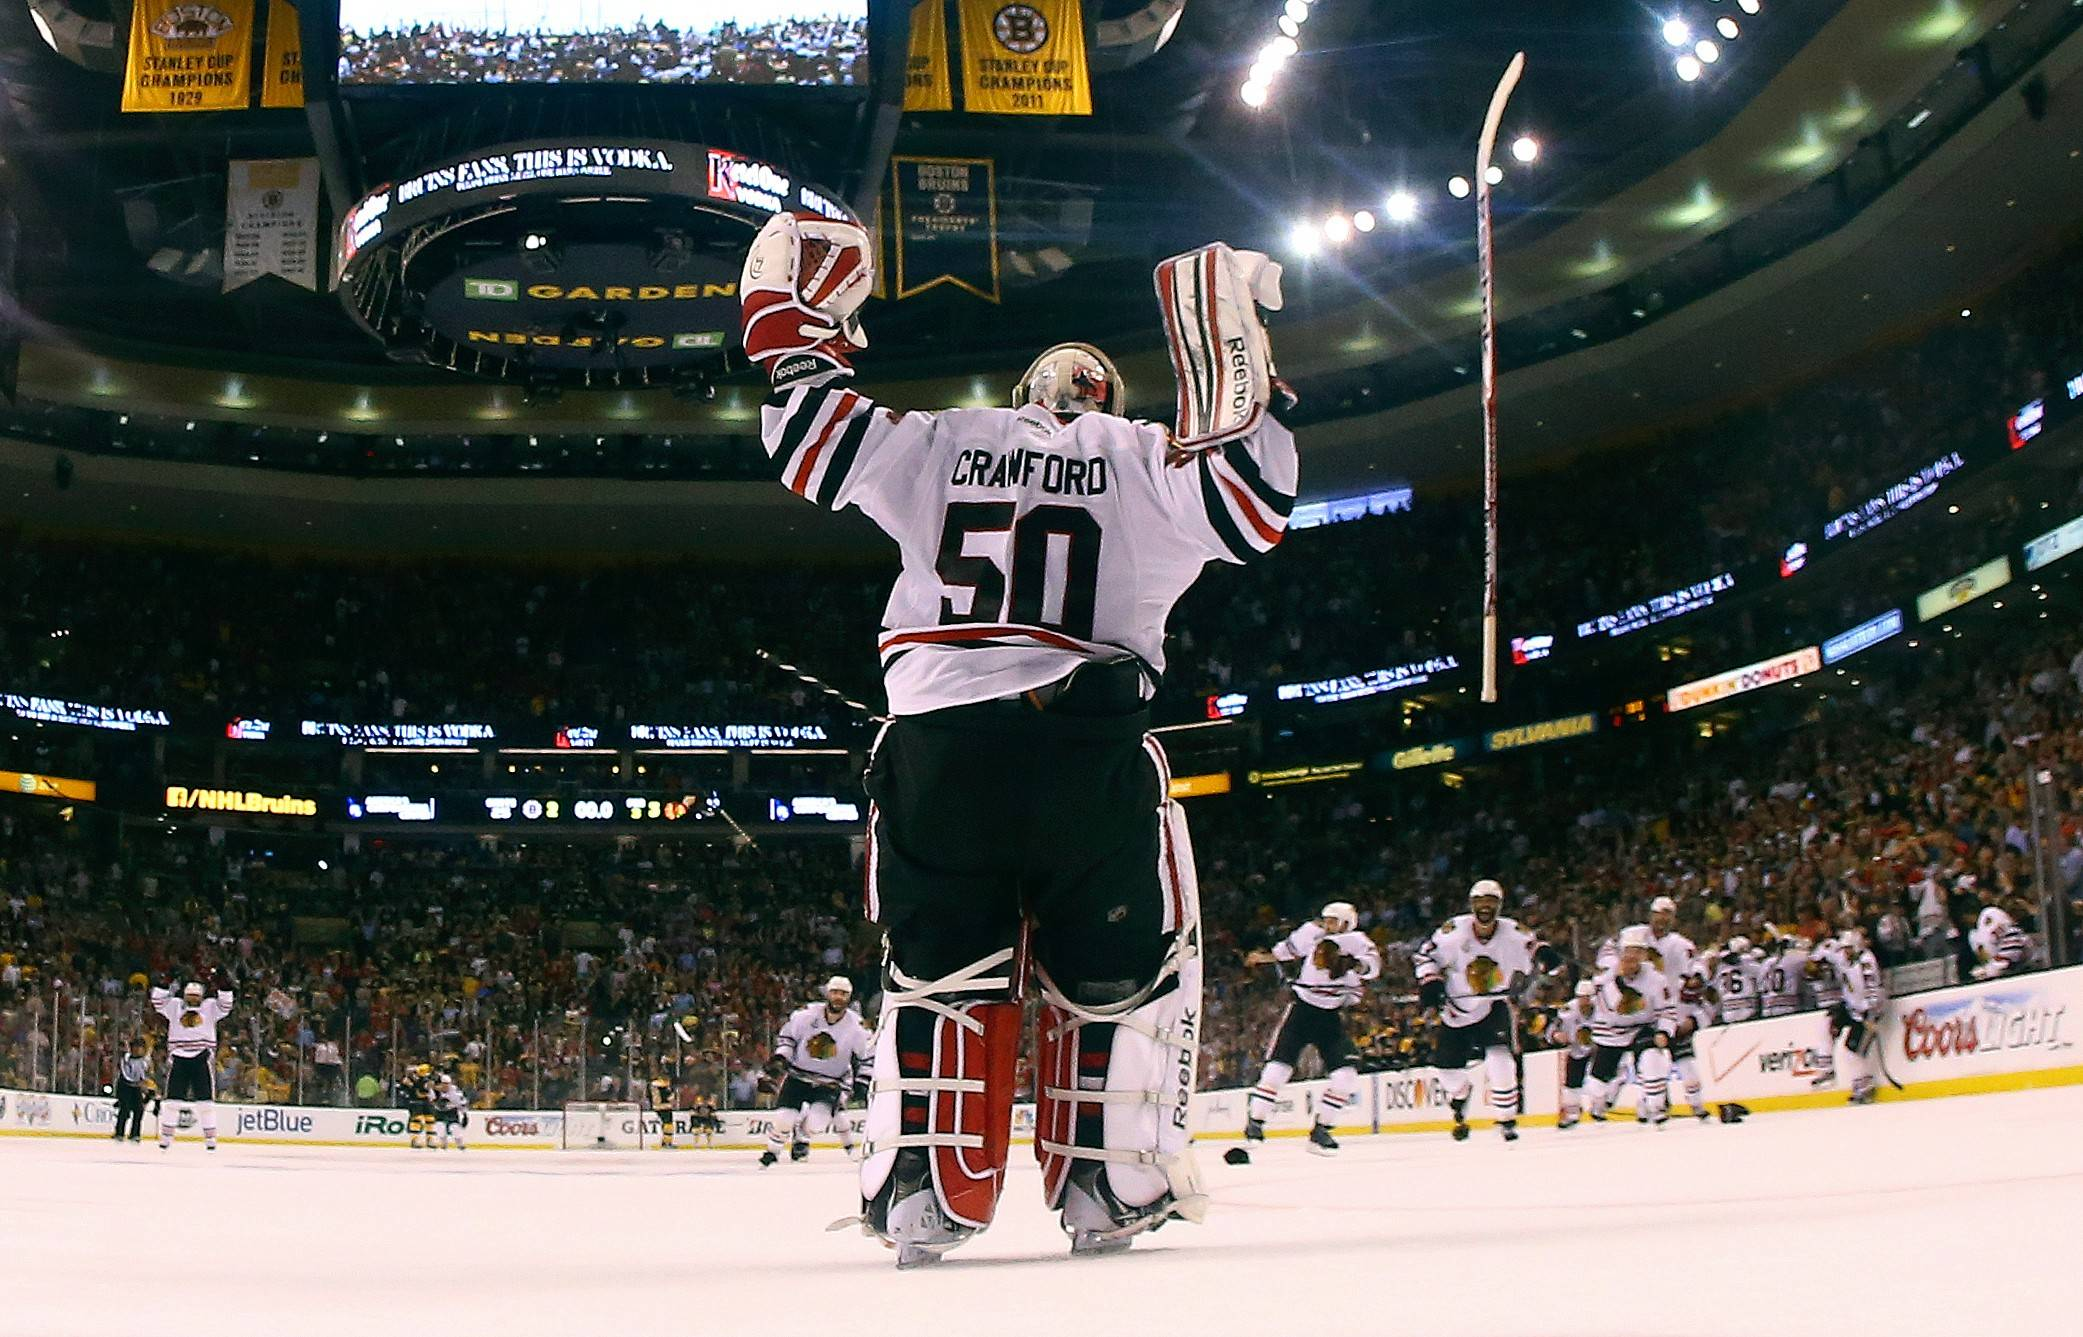 Blackhawks goalie Corey Crawford celebrates with his teammates after beating the Boston Bruins 3-2 in Game 6 to win the Stanley Cup Final.